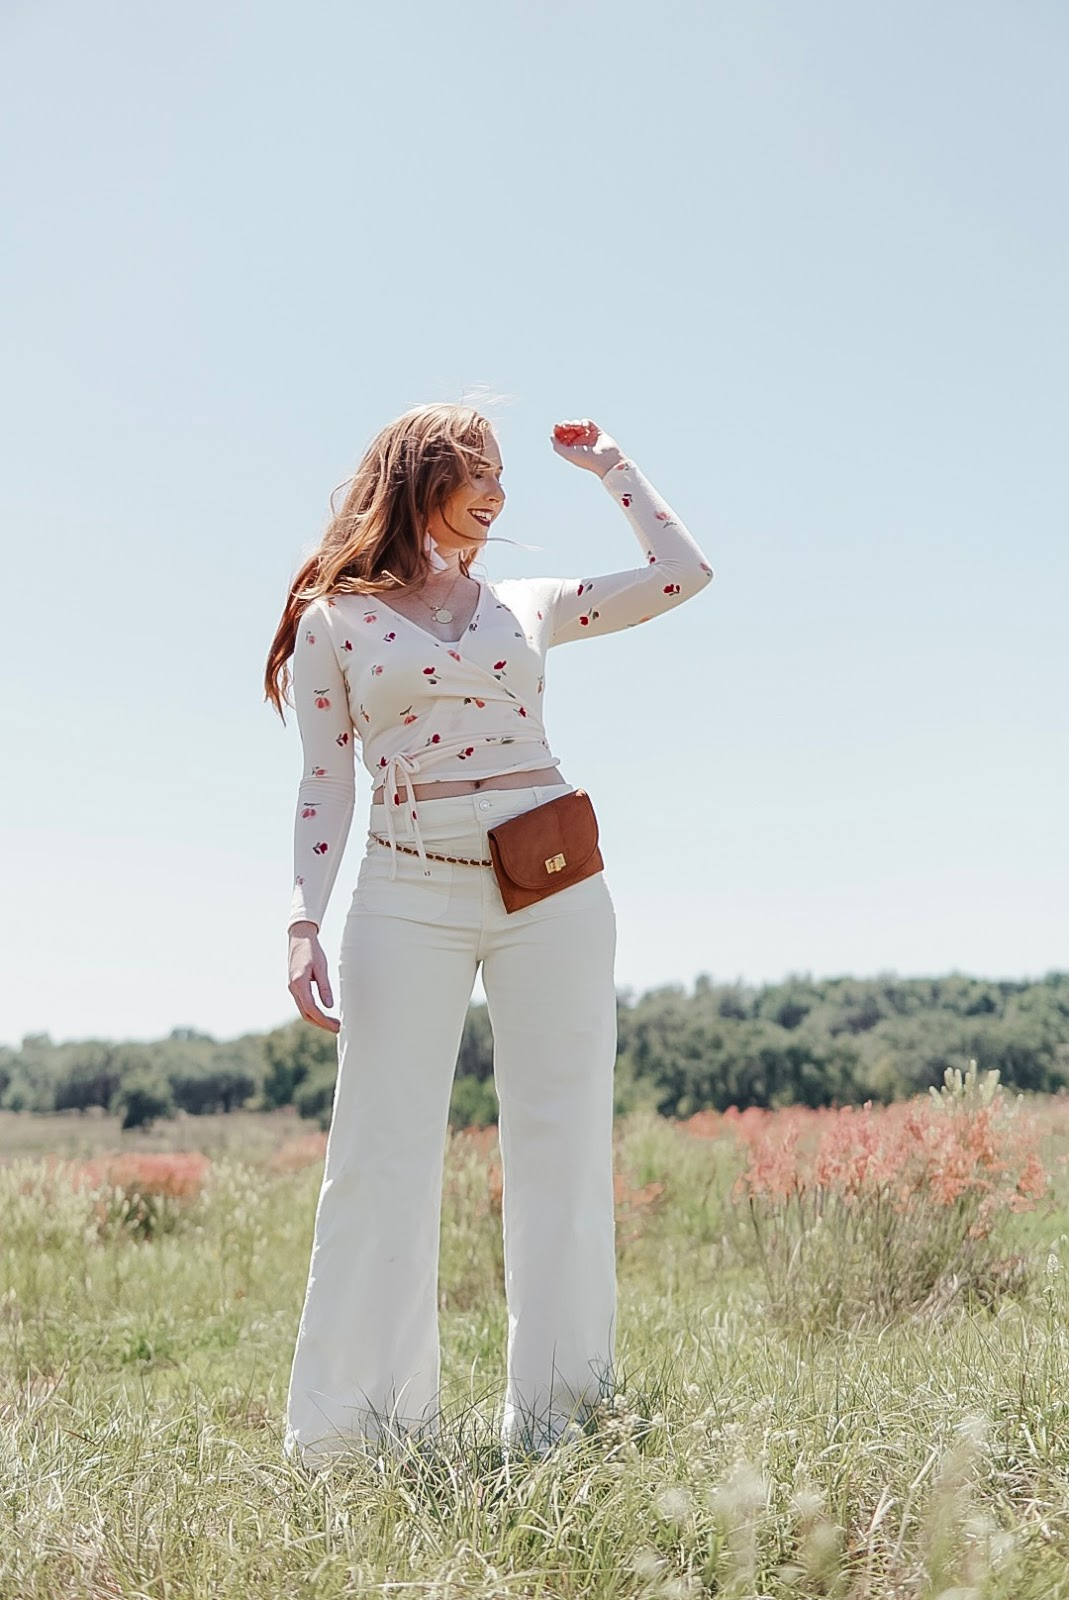 affordable by amanda: how to style 70s trends for spring this season. wearing a floral printed tulip long sleeve top in pink from forever 21 and white corduroy pants from forever 21.